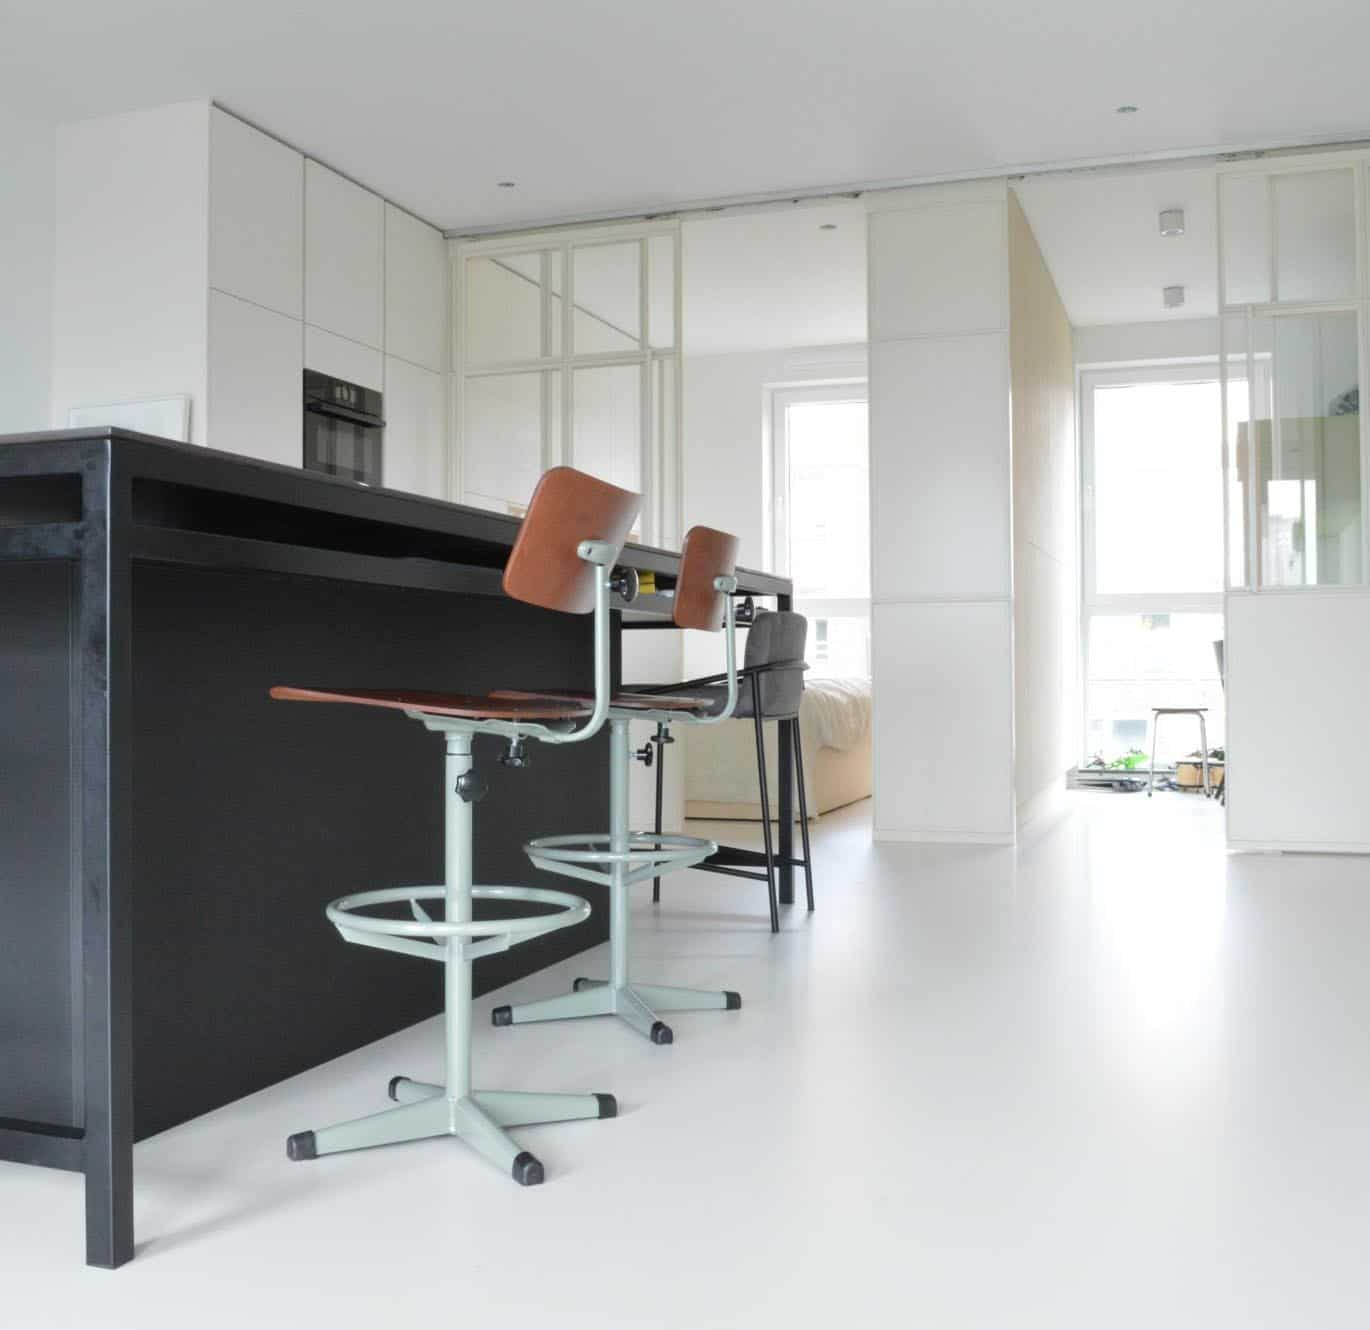 Showroom Sinck en Ko keuken